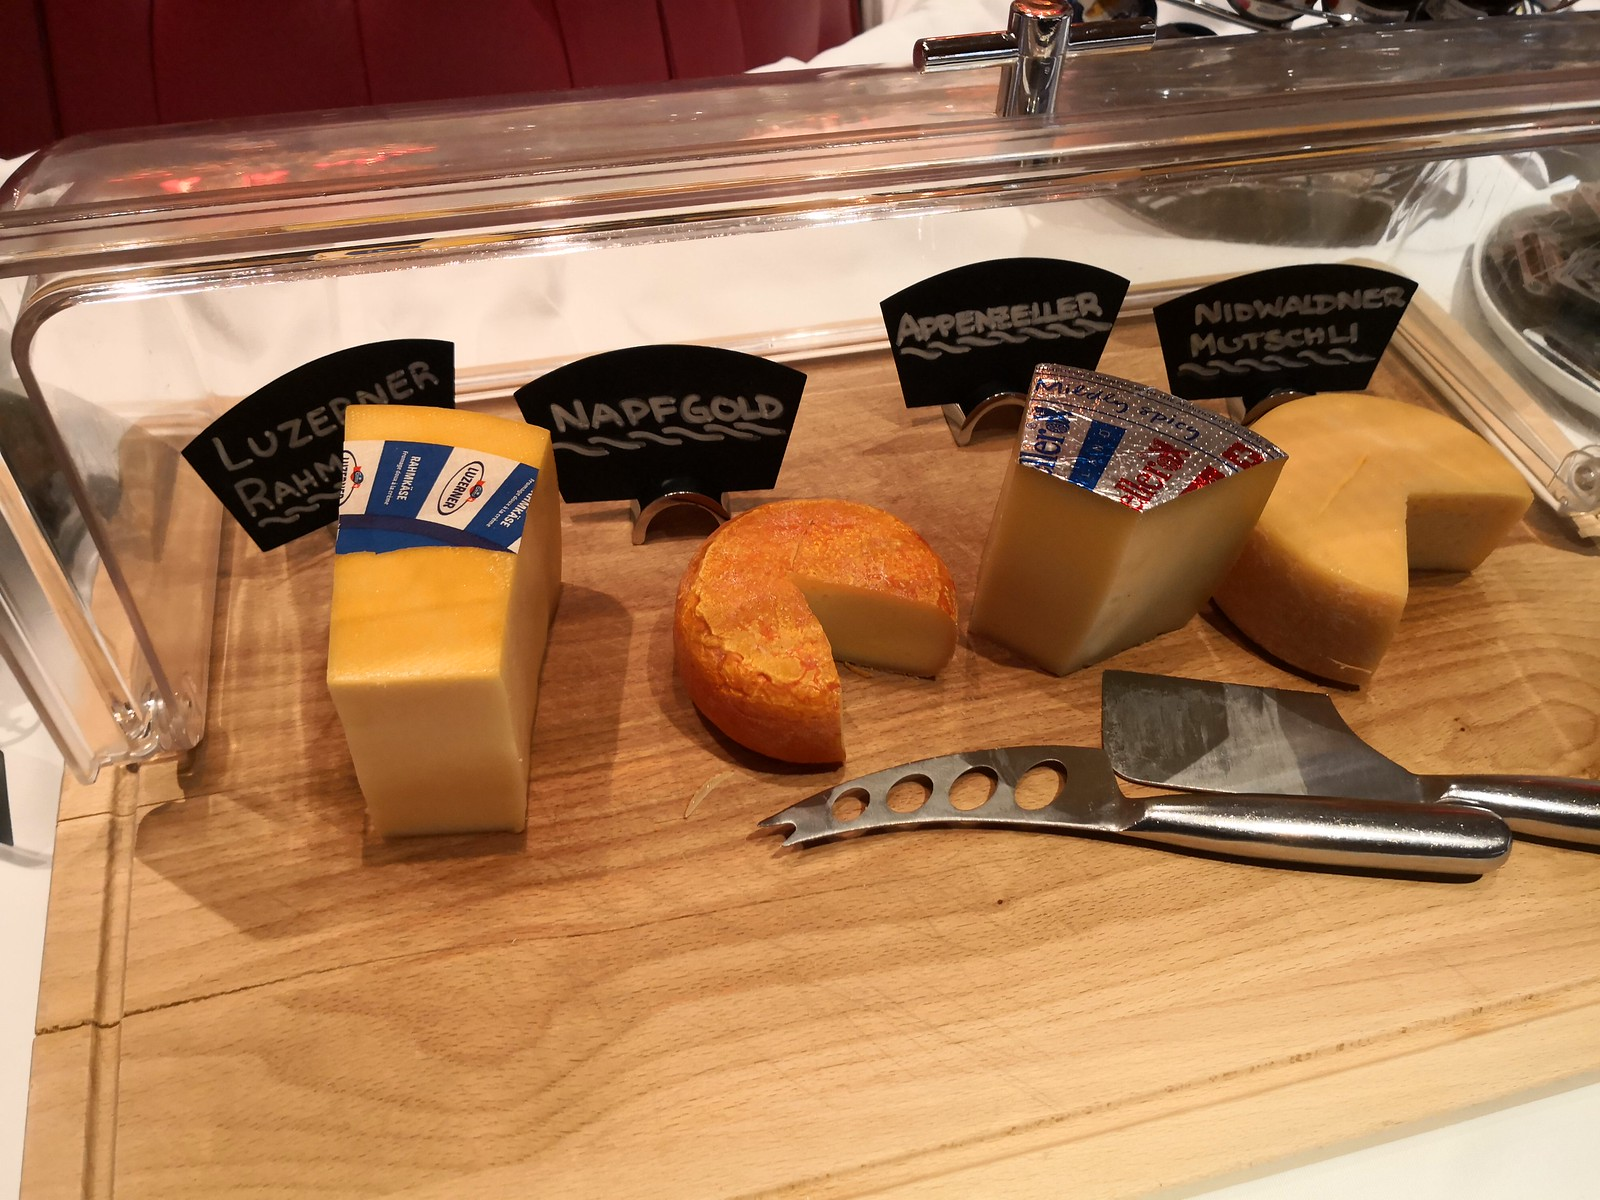 Cheese on the buffet